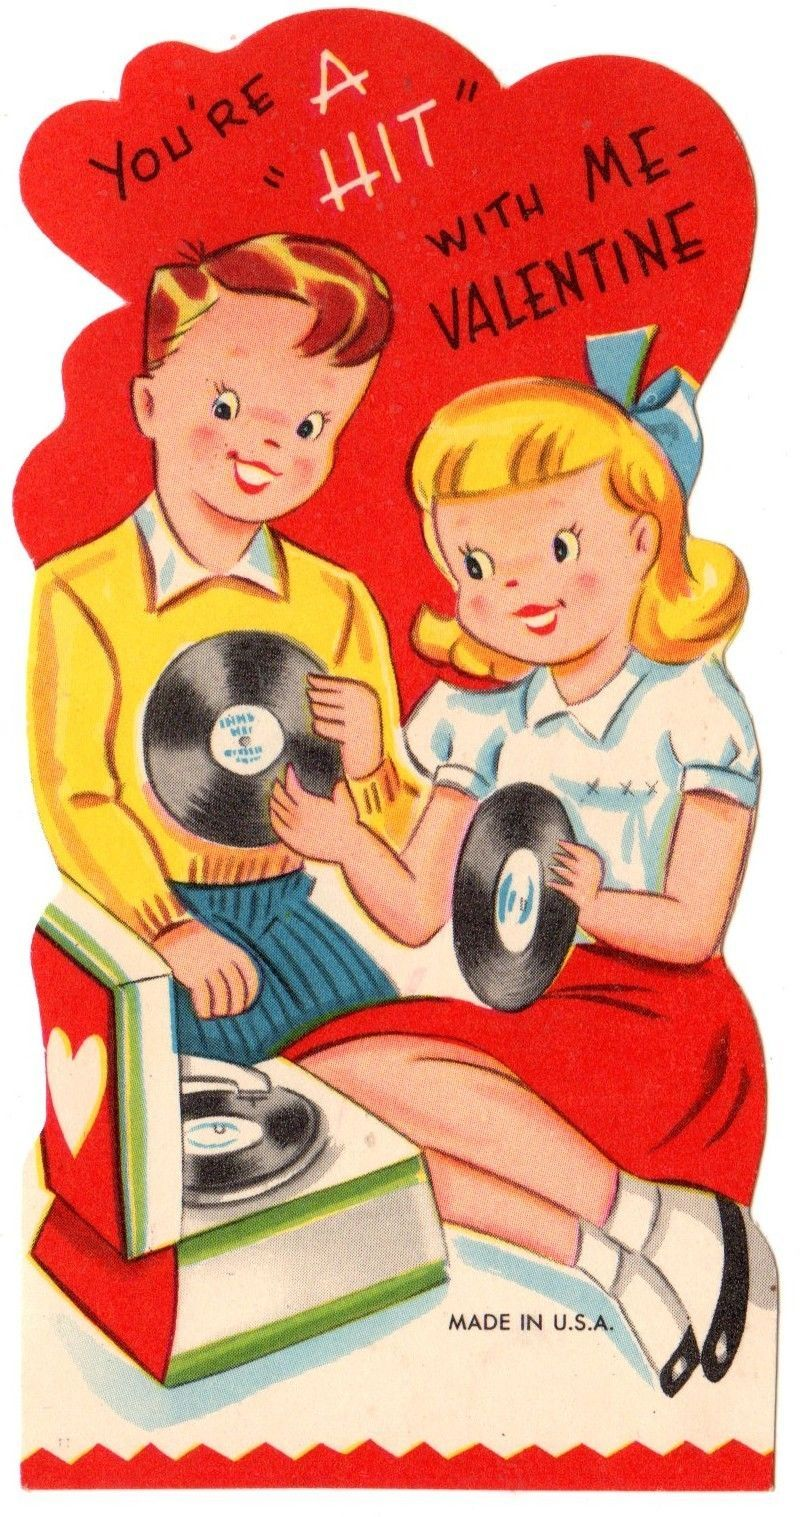 Teens Play 45 RPMs on Old Phonograph Record Player Vintage